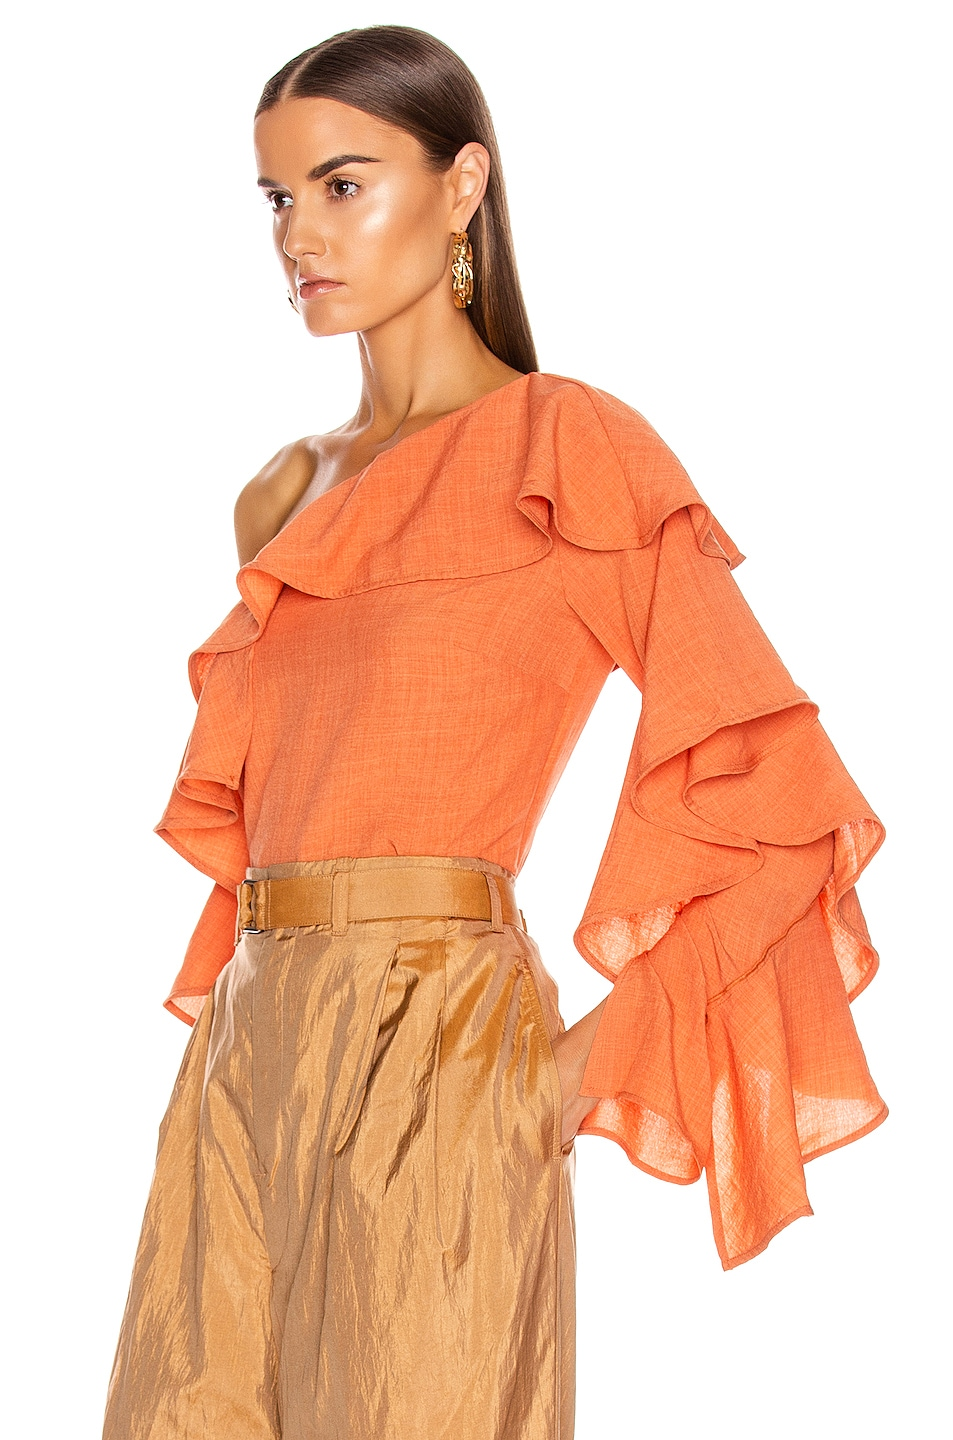 Image 3 of Atoir Give A Little Top in Sunset Orange